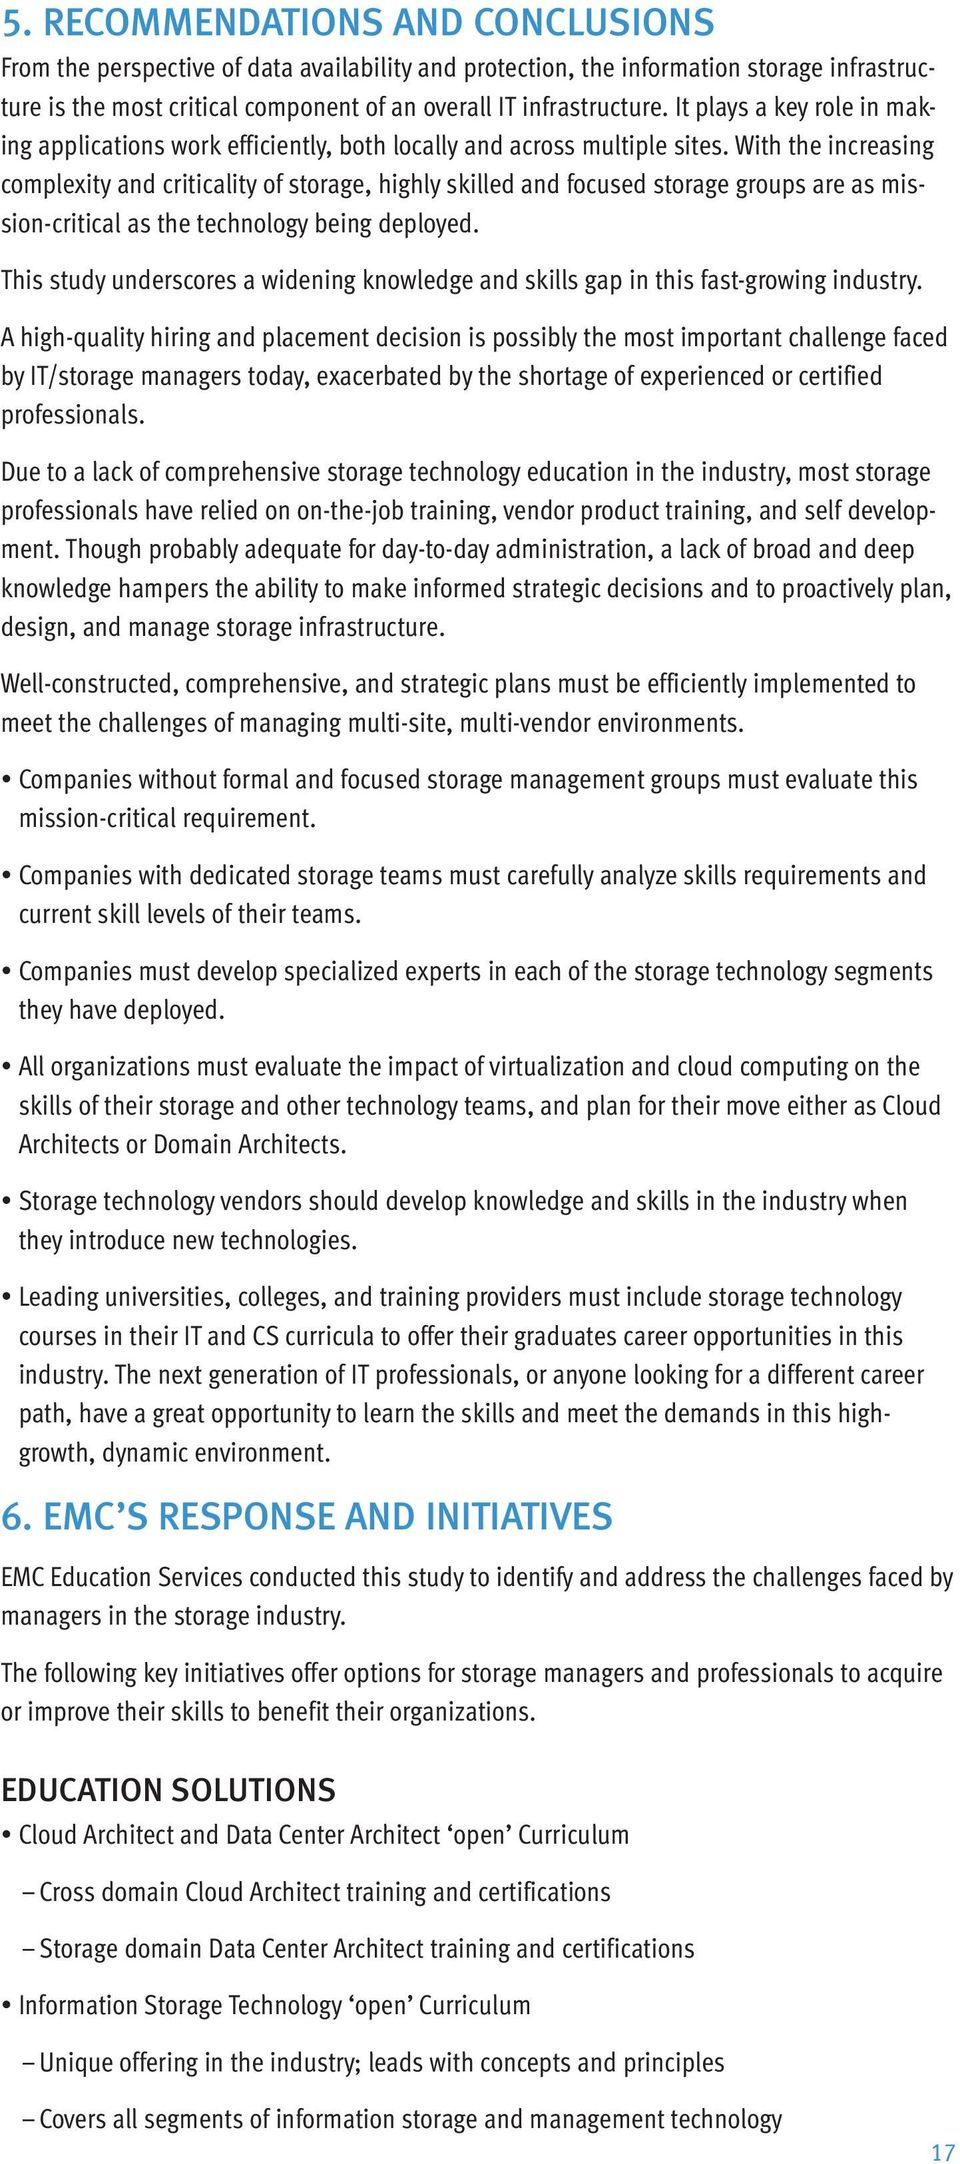 With the increasing complexity and criticality of storage, highly skilled and focused storage groups are as mission-critical as the technology being deployed.